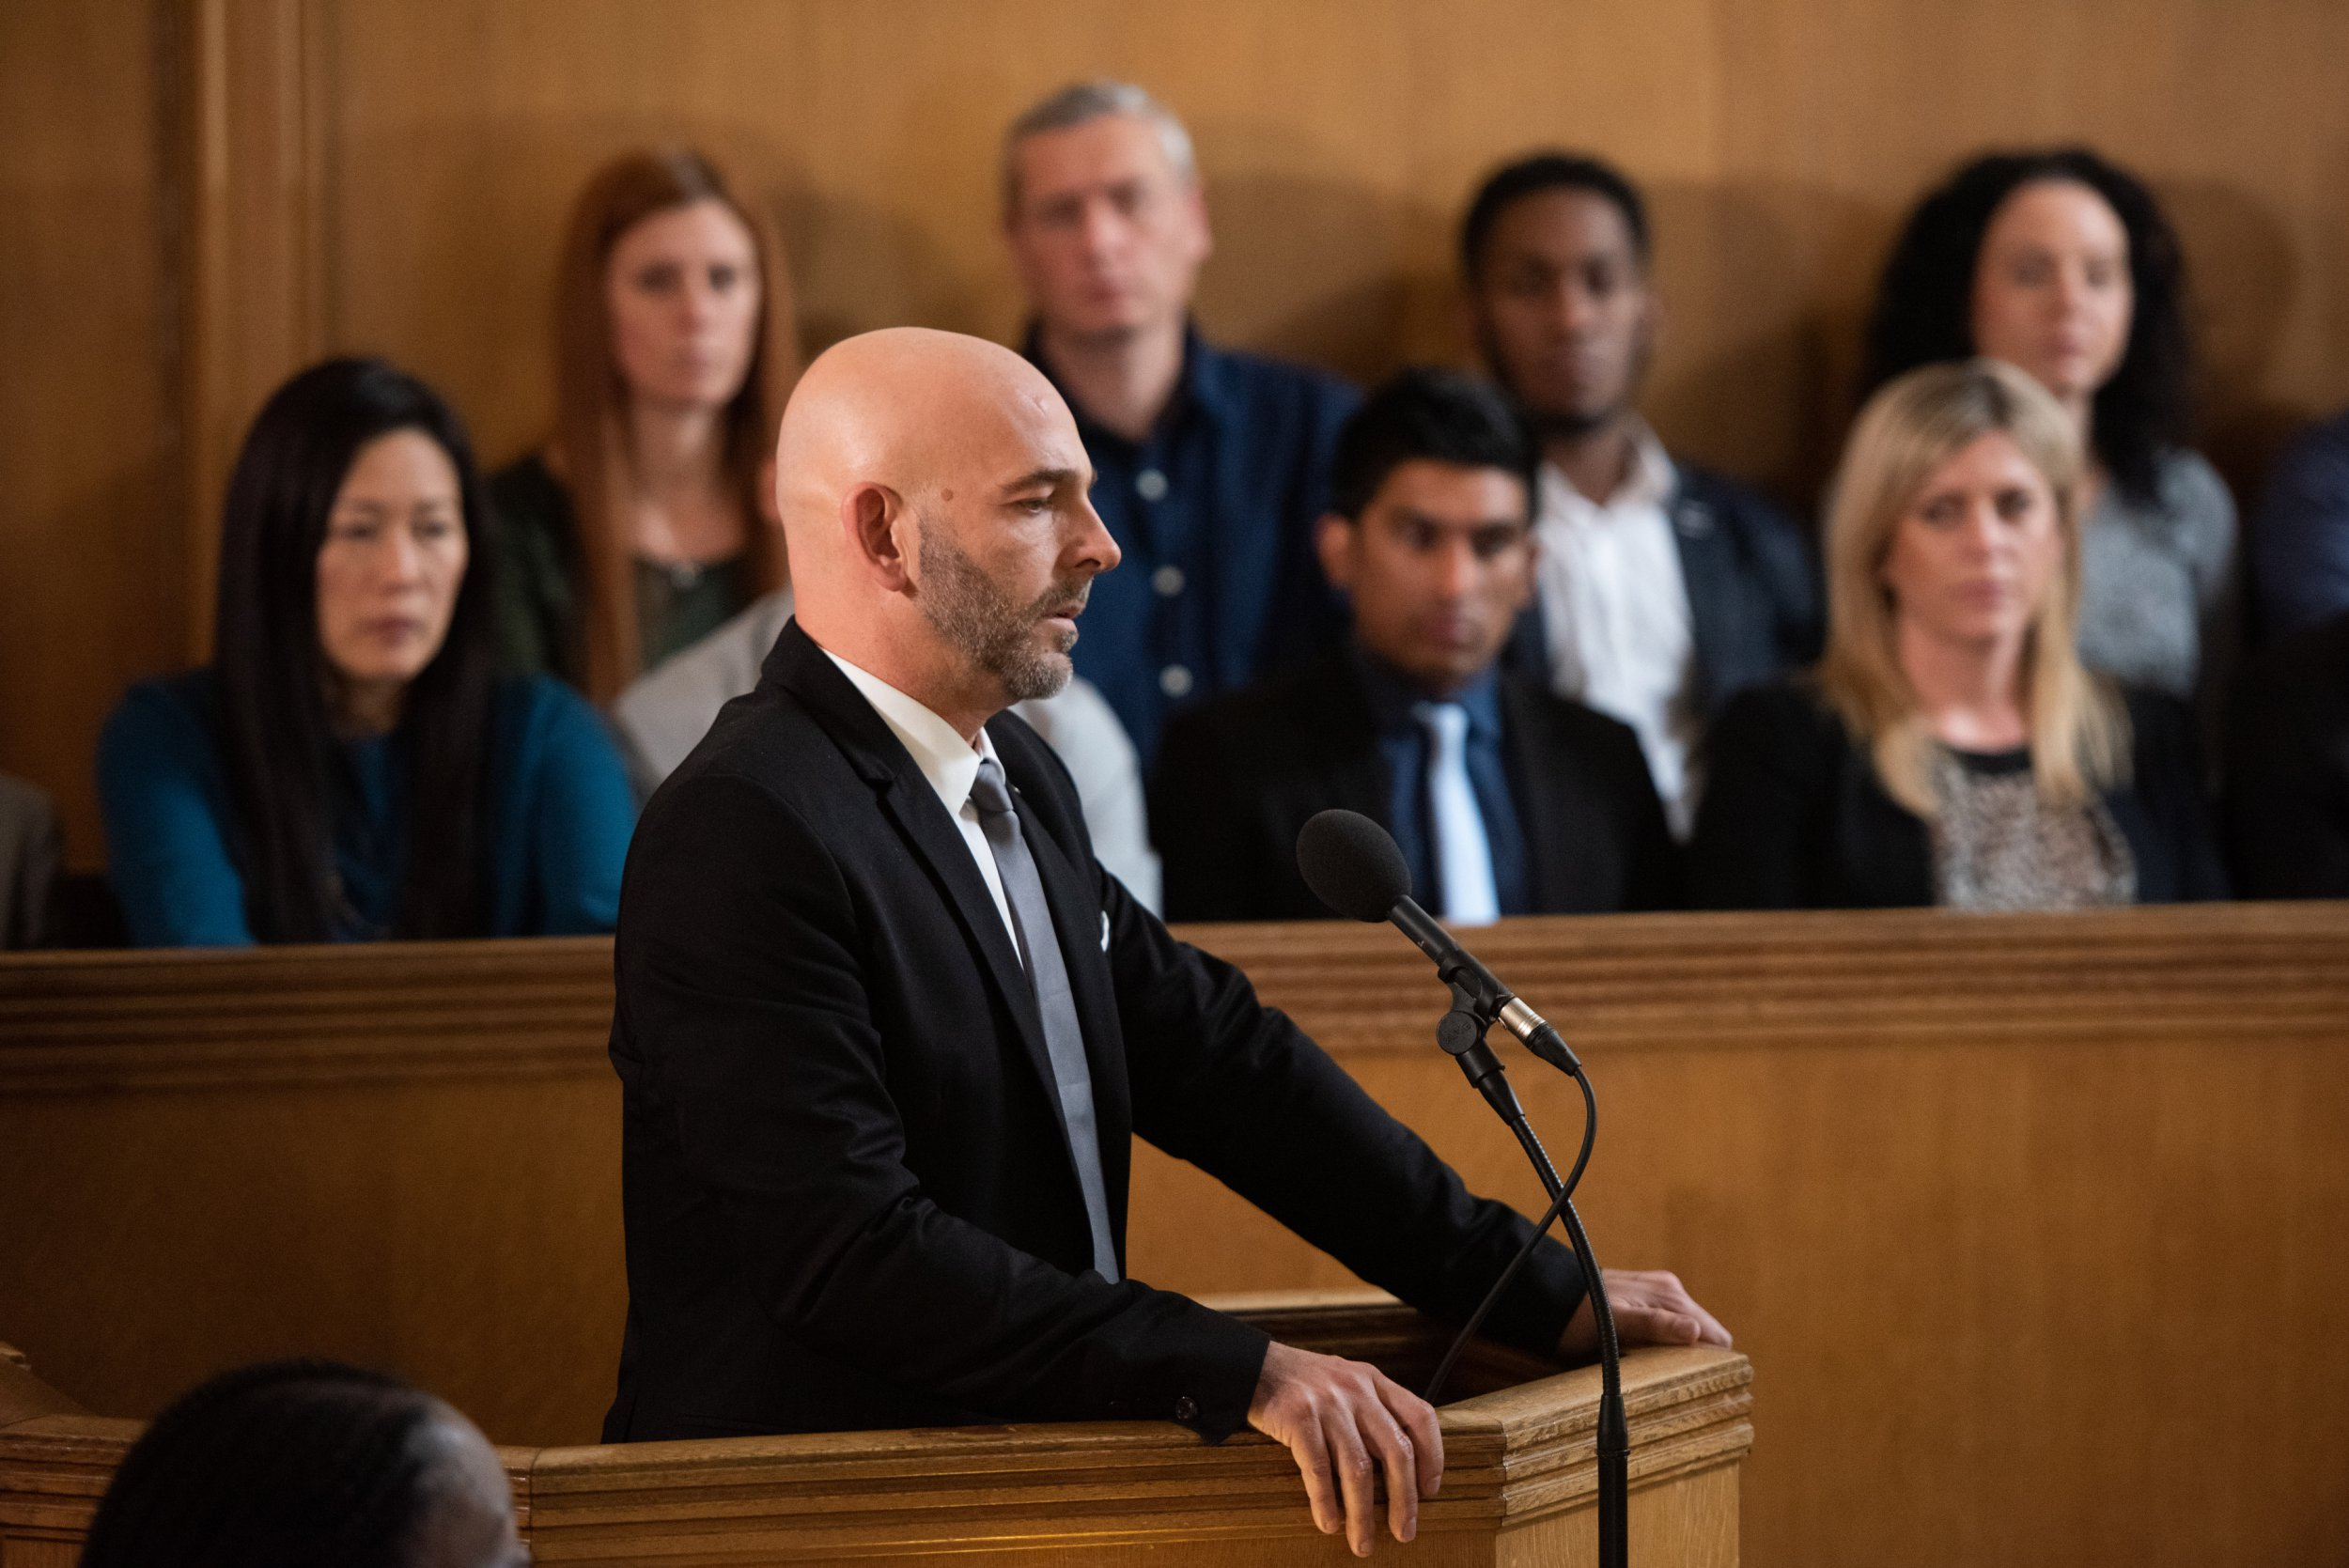 Hollyoaks spoilers: A new victim comes forward in the trial against Buster Smith